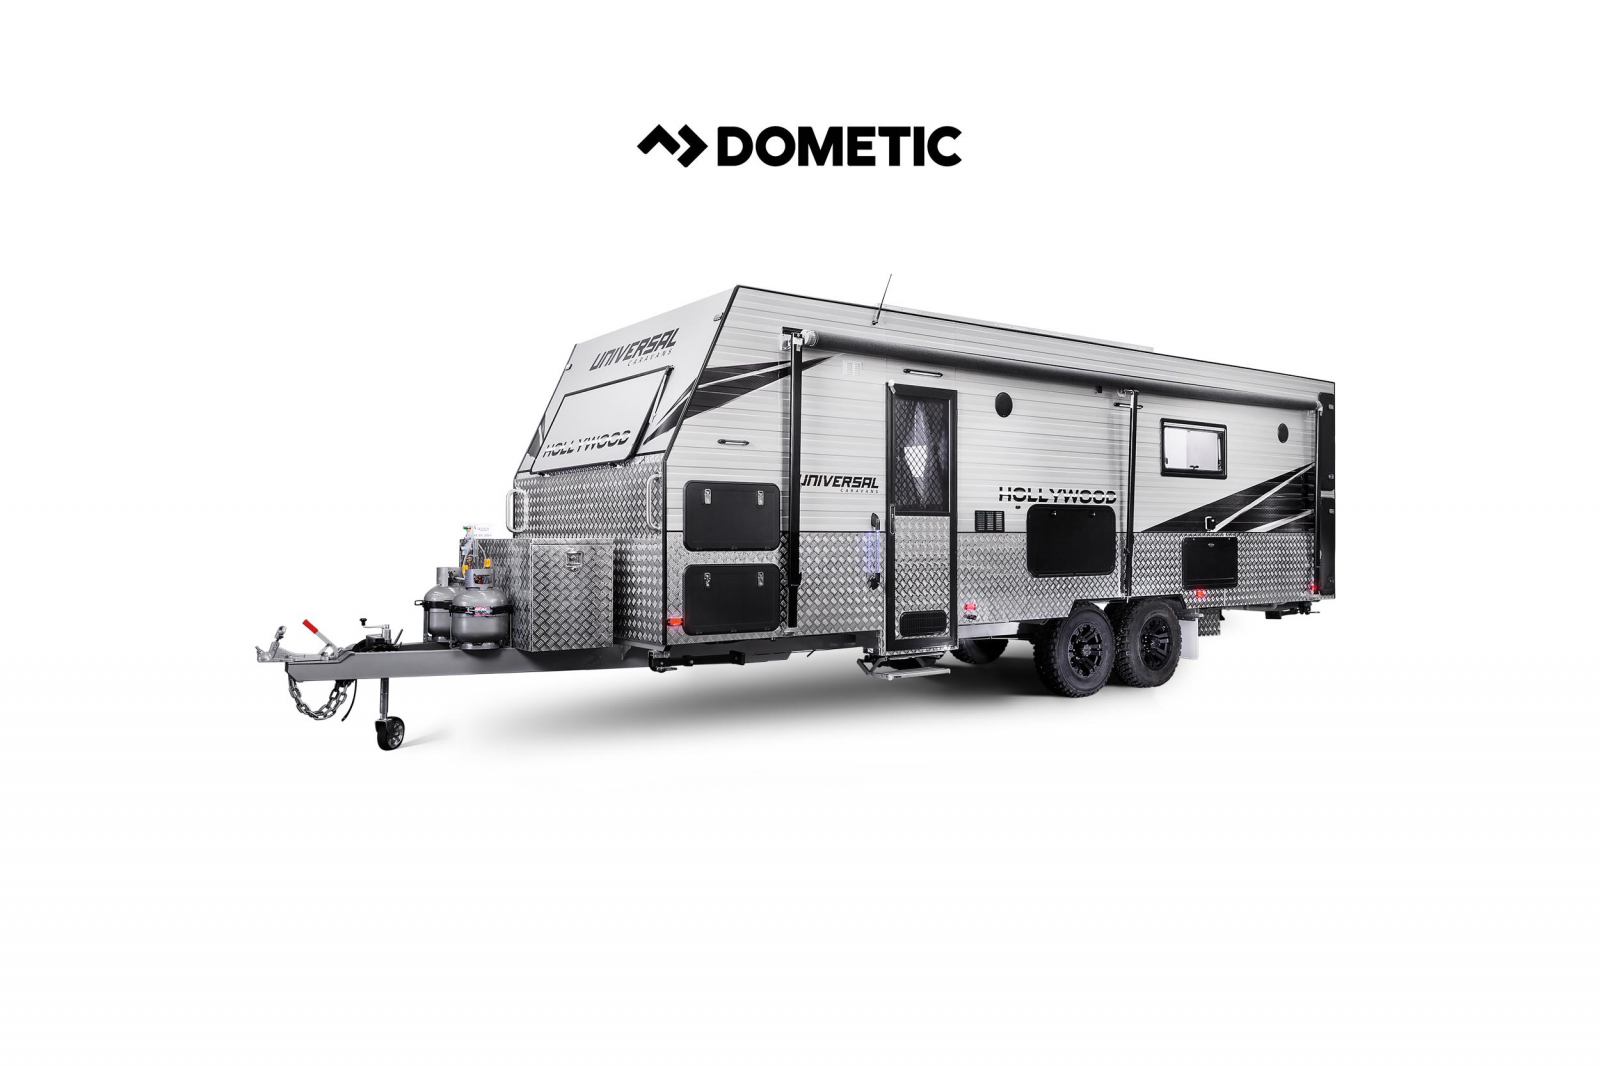 Dometic – Care in everything